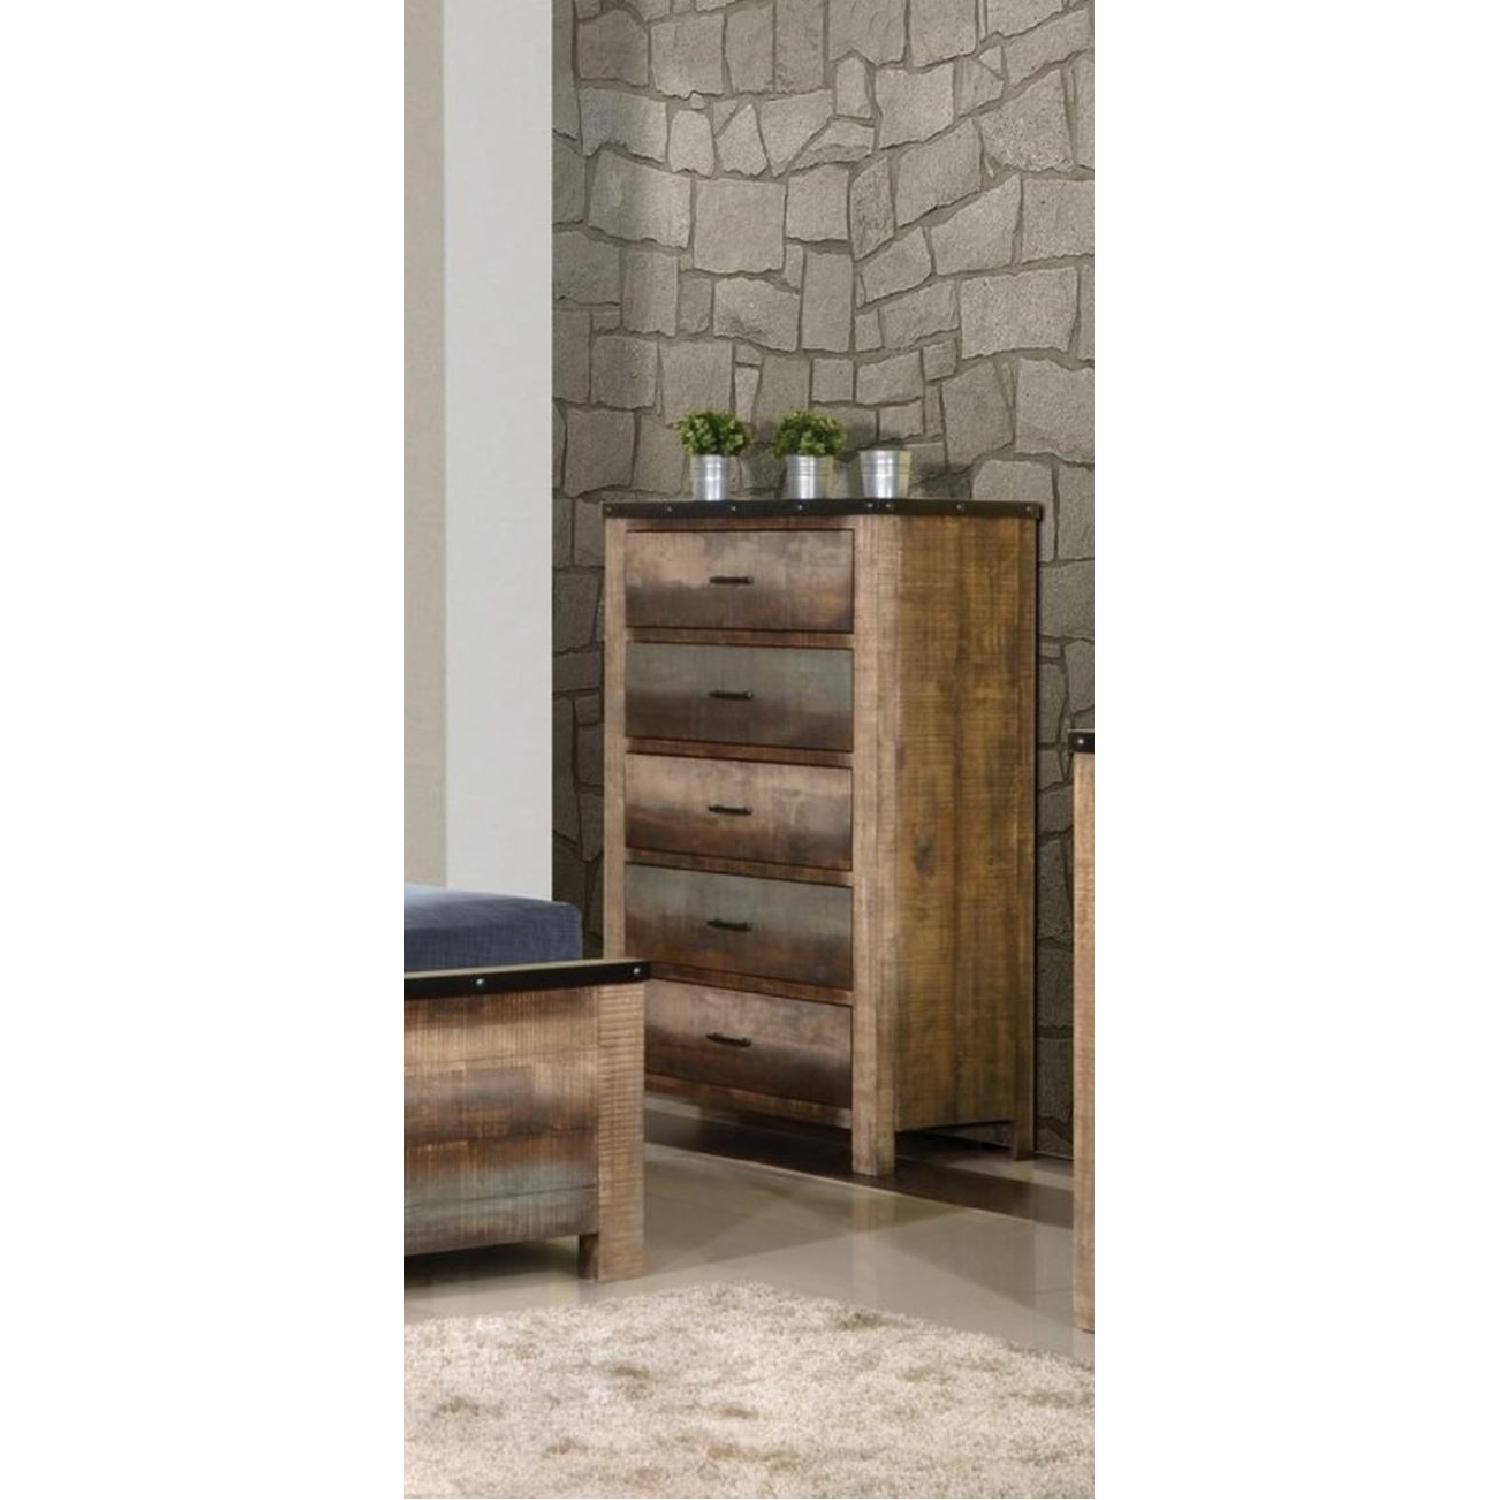 Rustic Style Chest in Solid Wood Multi-Tonal Finish - image-2